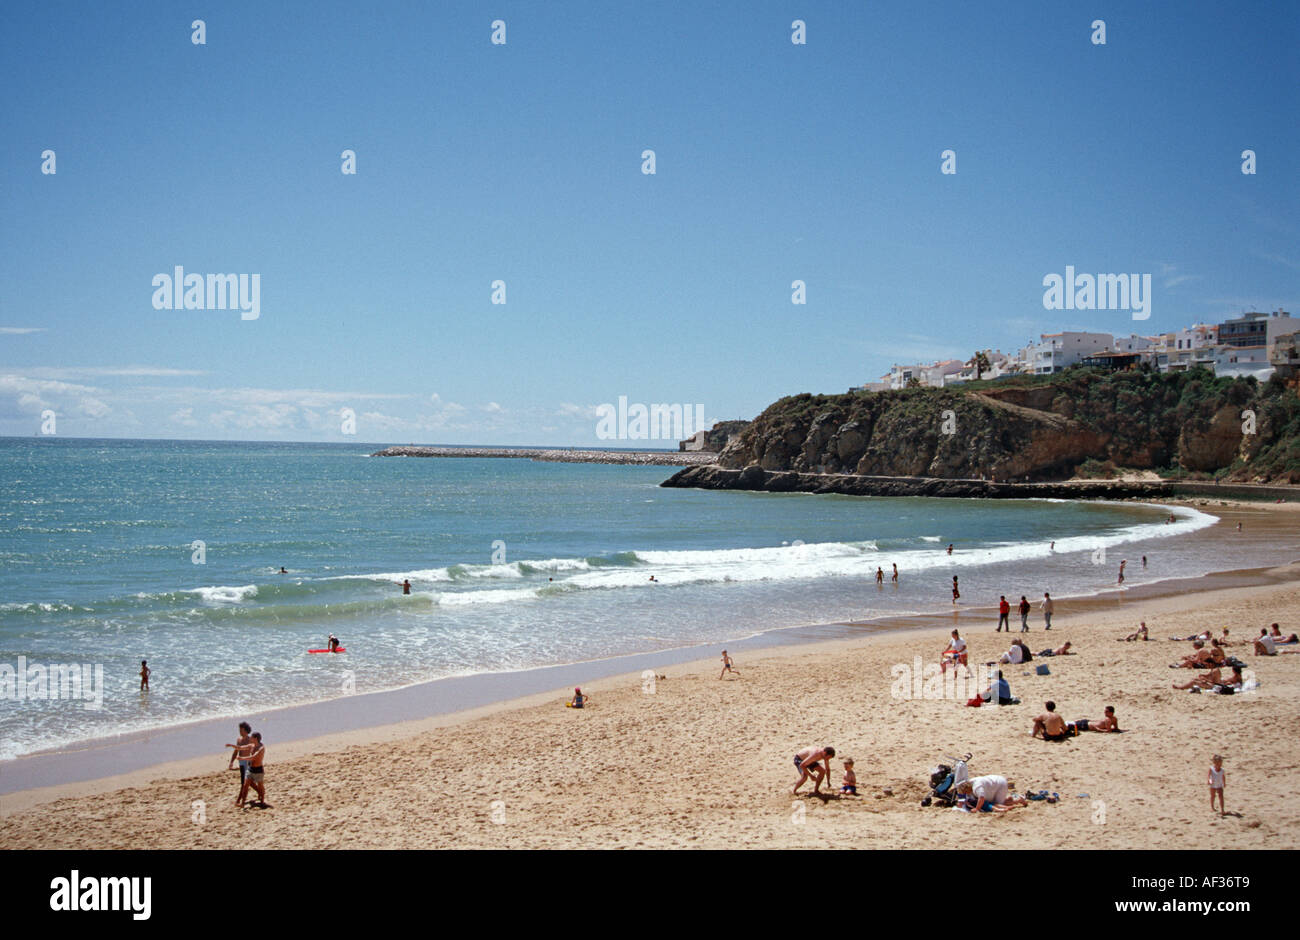 Holidaymakers on the beach at Albufeira Algarve Portugal - Stock Image